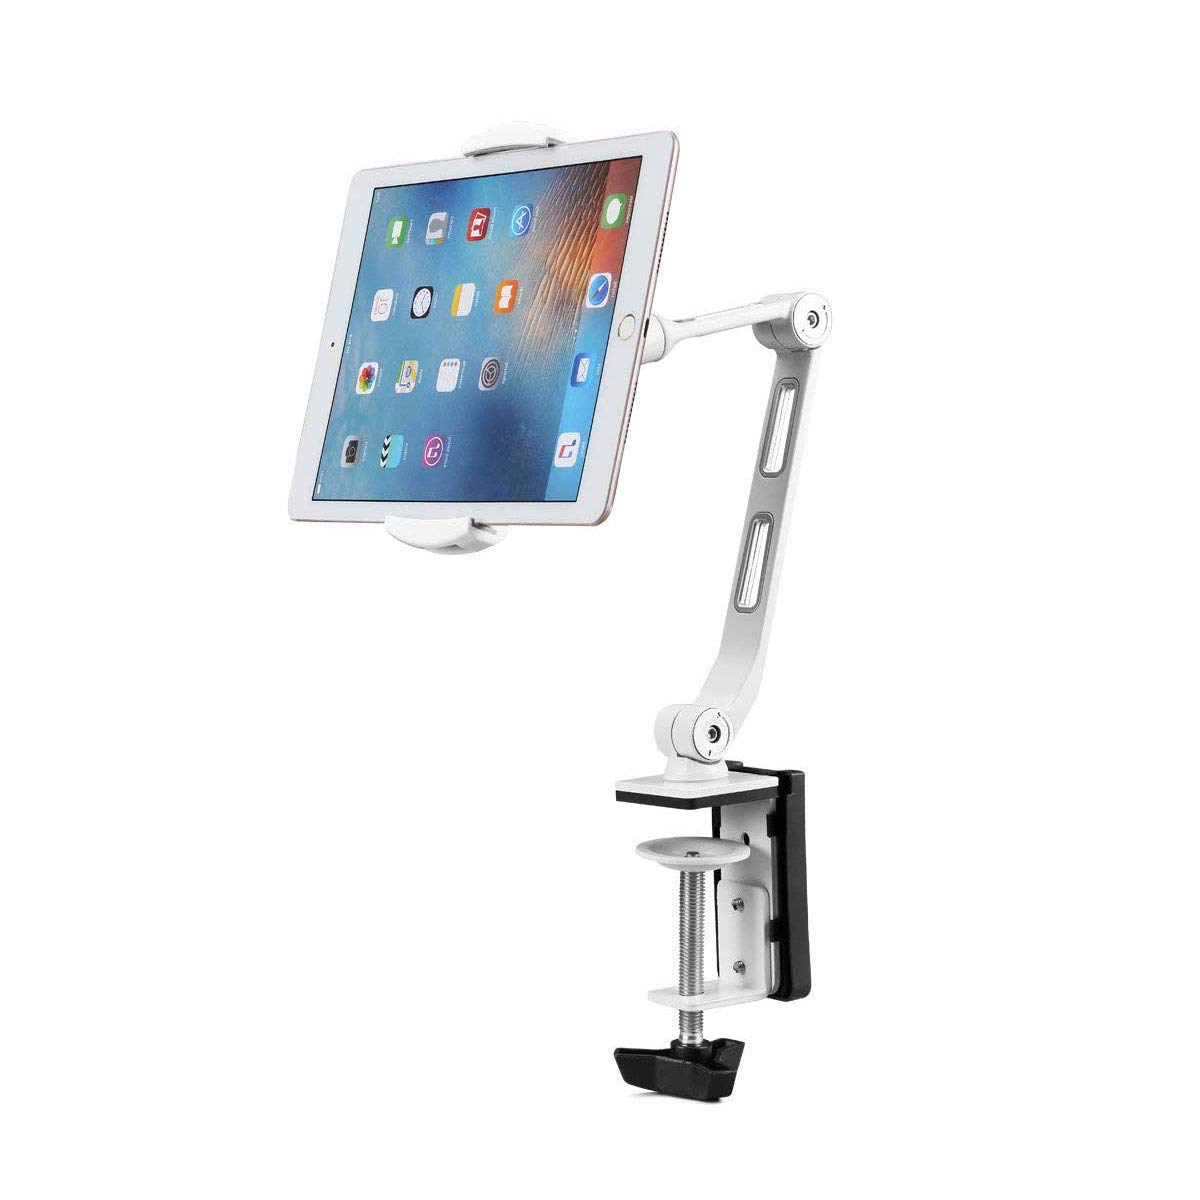 suptek Aluminum Tablet Desk Mount Stand 360° Flexible Cell Phone Holder for iPad, iPhone, Samsung, Asus and More 4.7-11 inch Devices, Good for Bed, Kitchen, Office (YF208BW) by suptek